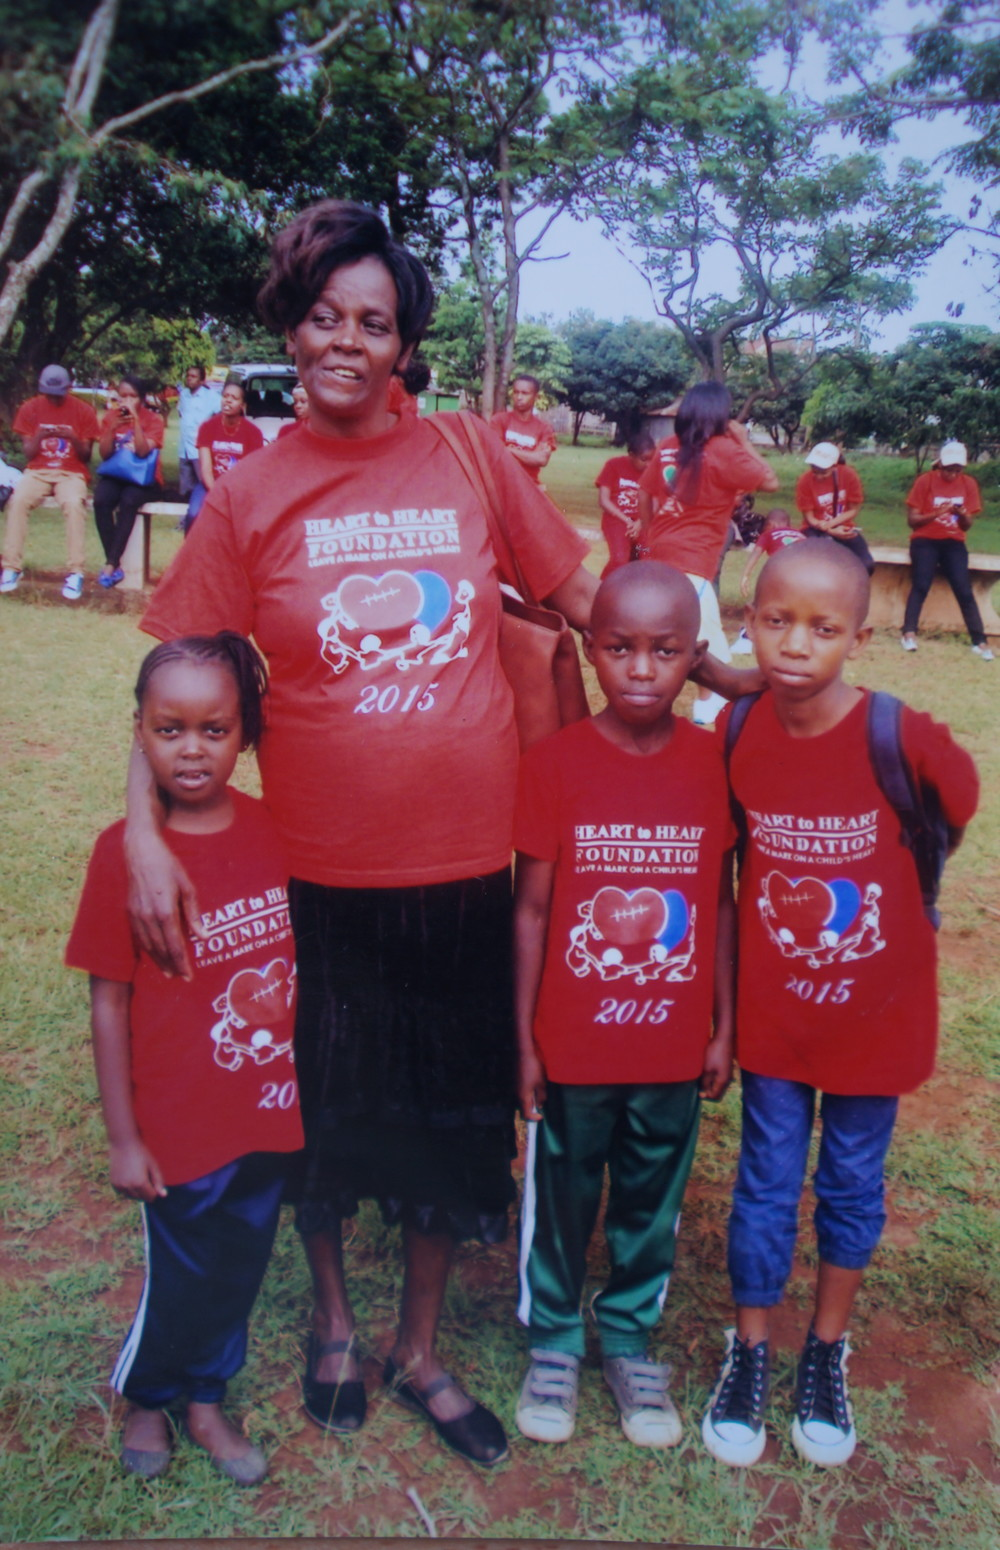 Jecinta with three children she fundraised for